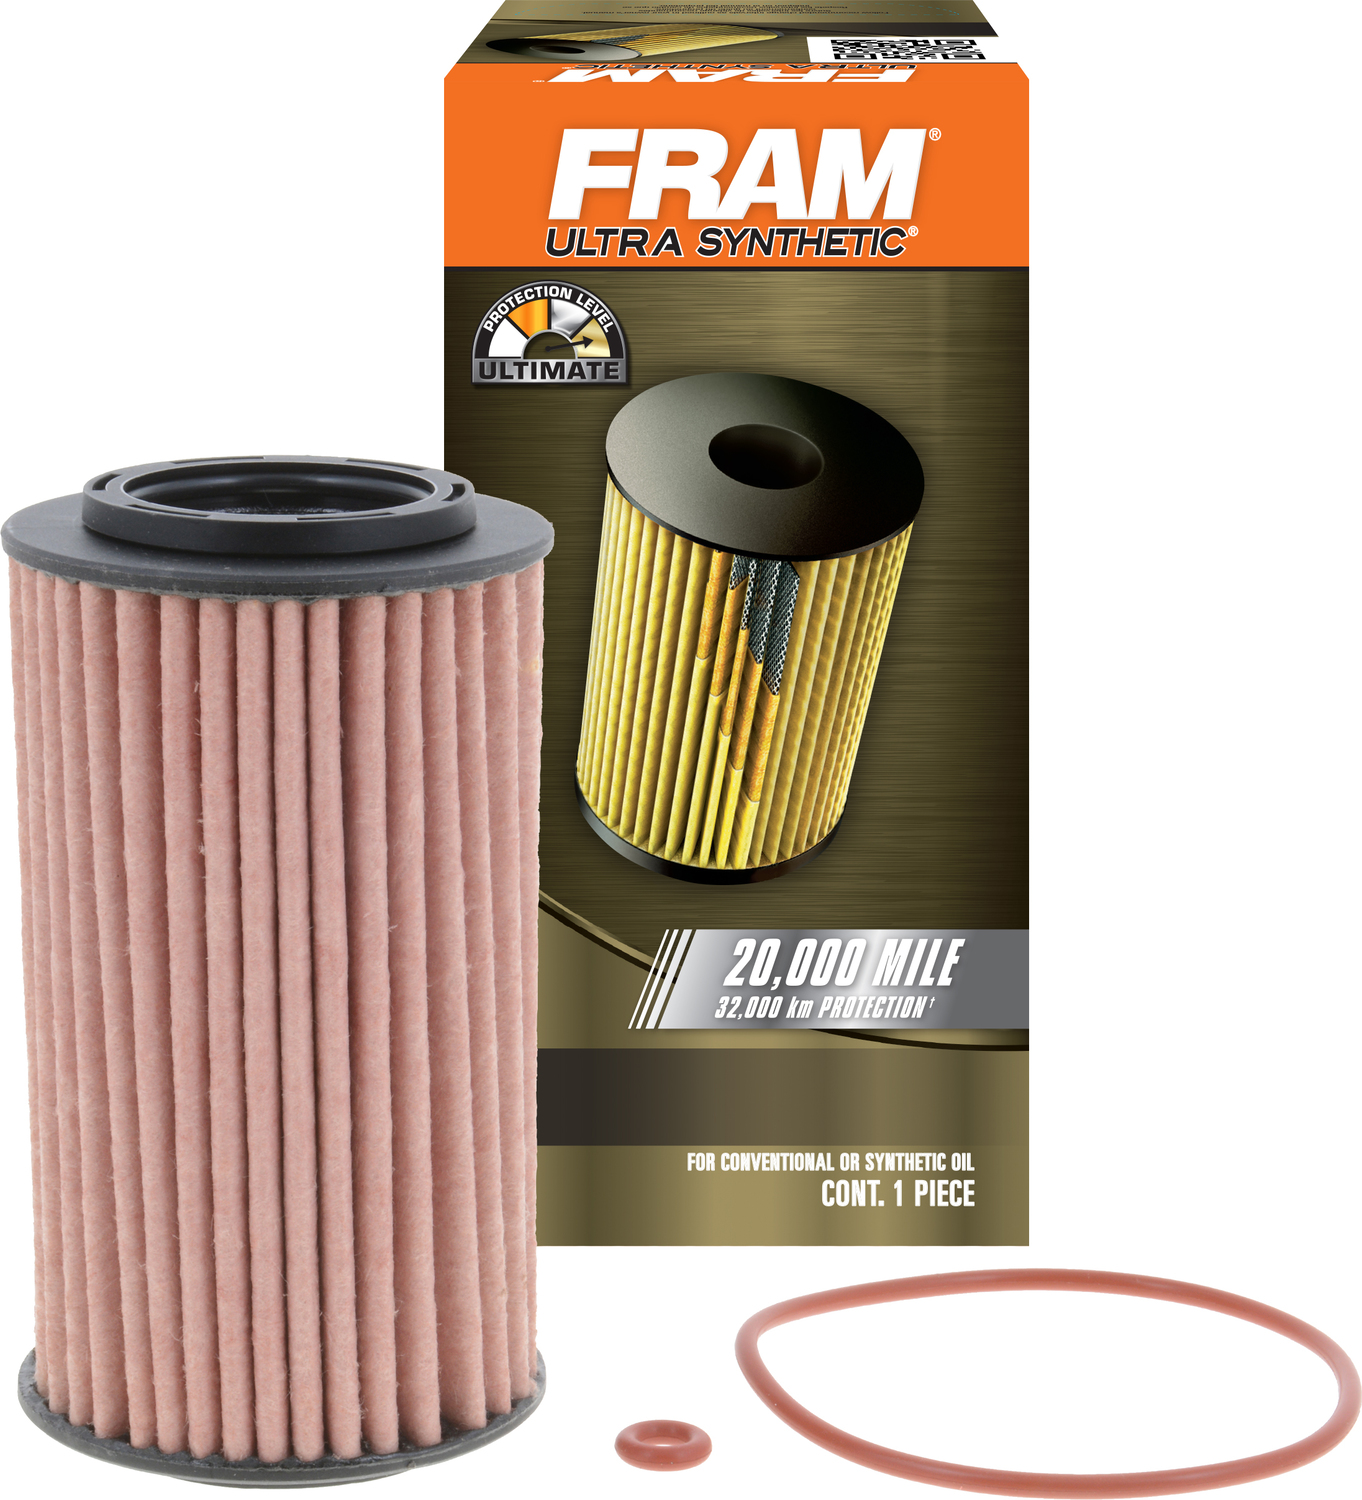 FRAM Ultra Synthetic Oil Filter, XG9999